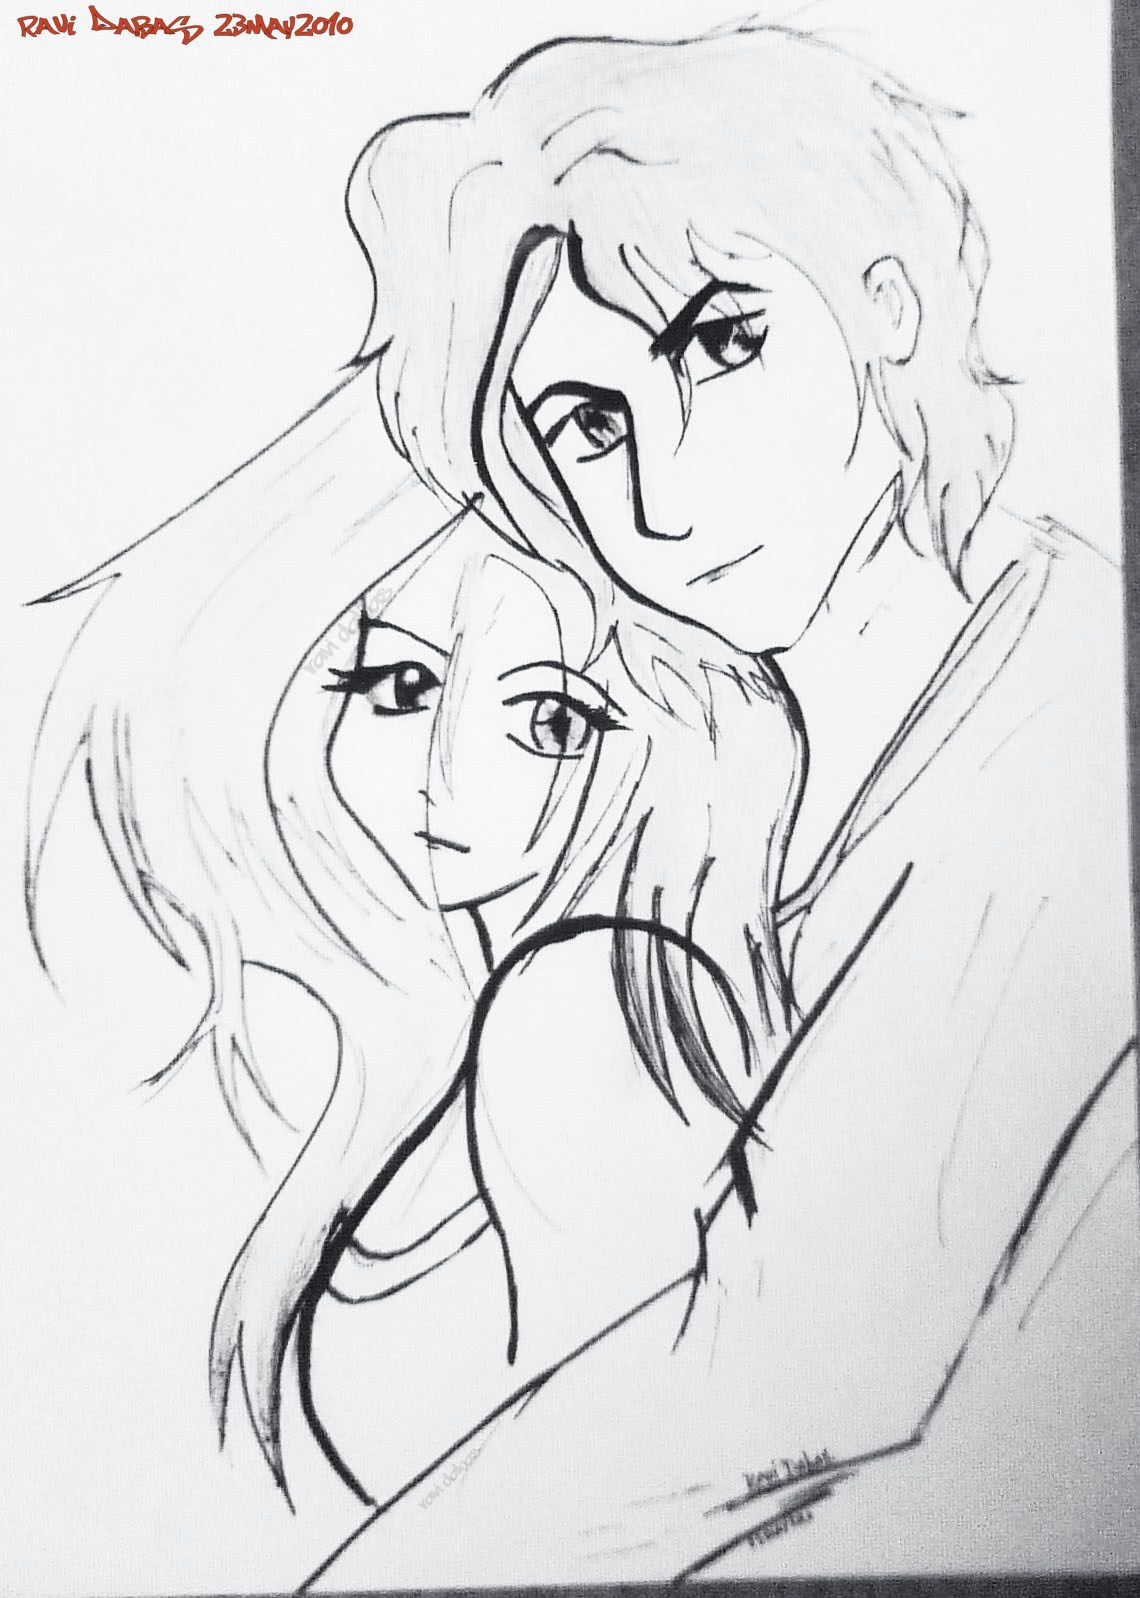 Romance anime cartoons romantic couple sketch of a young guy and a beautiful girl